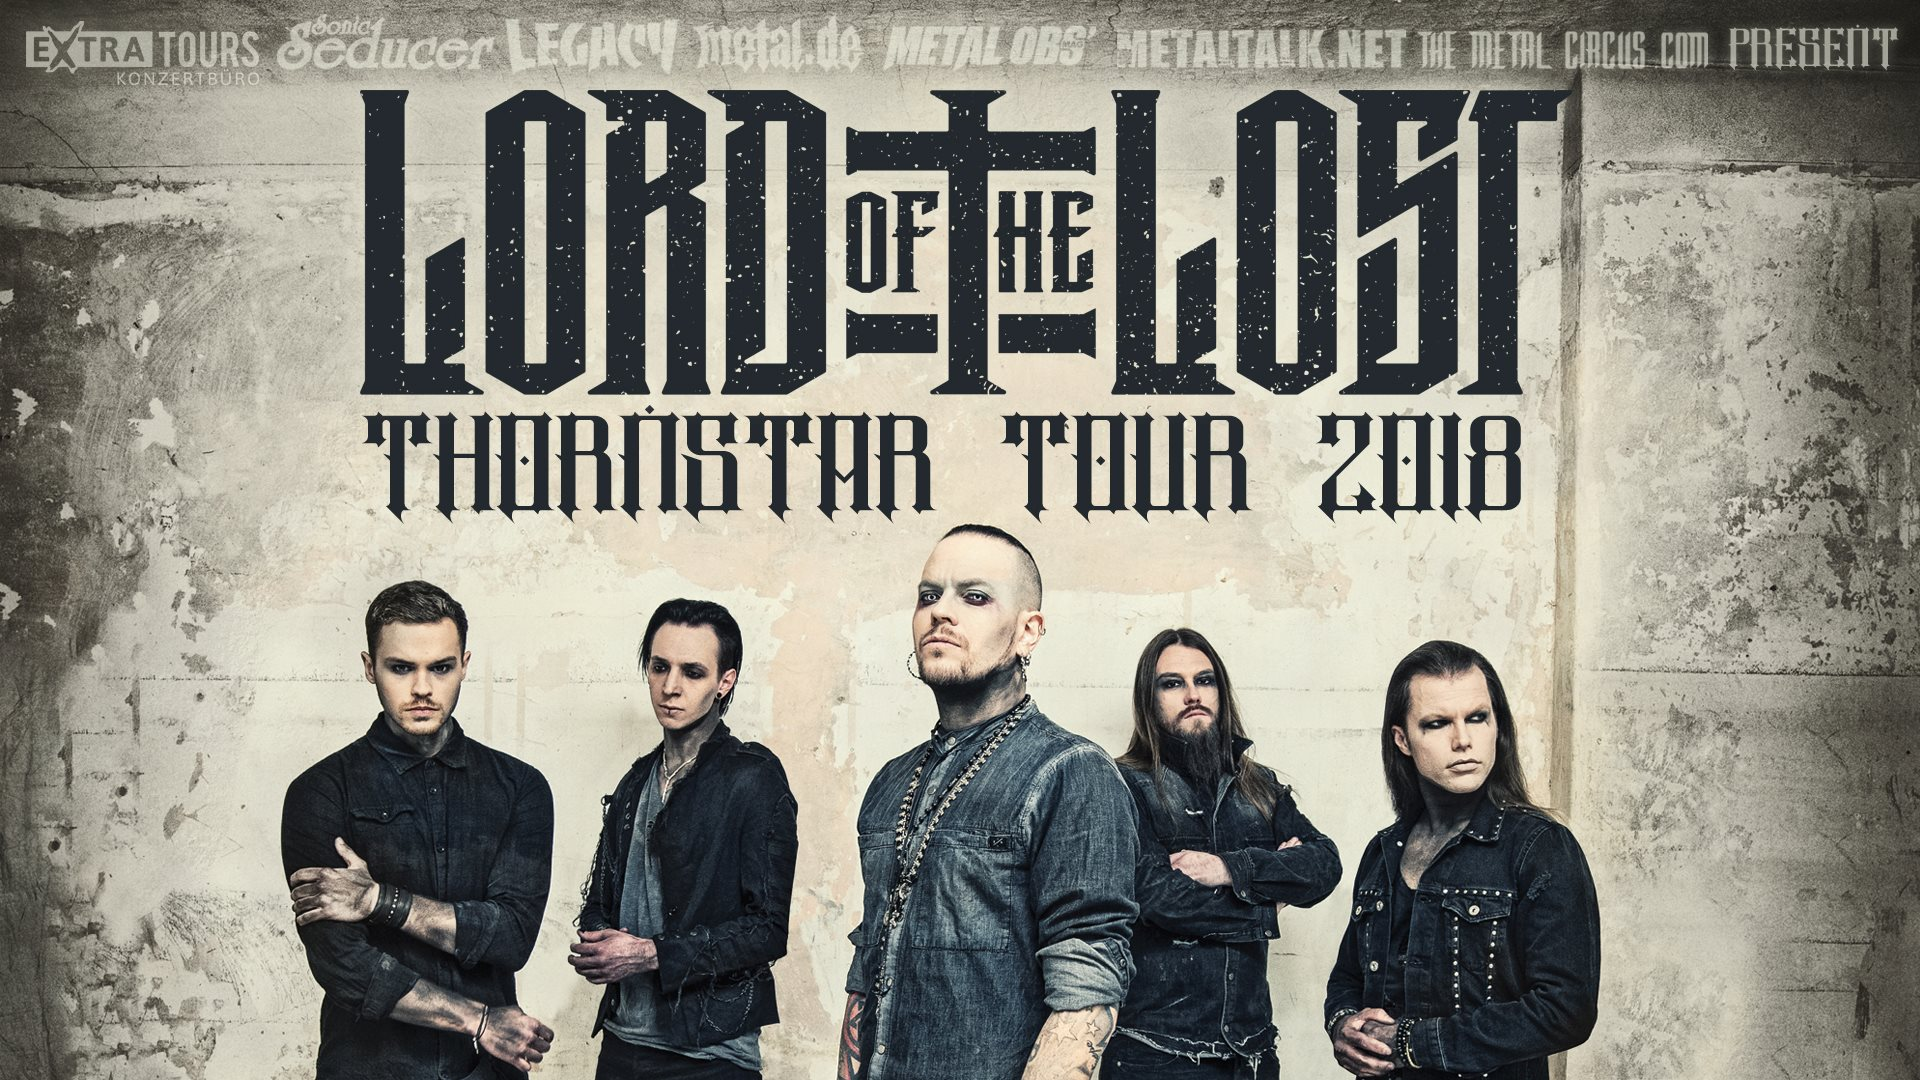 Lord Of The Lost - Tour 2018